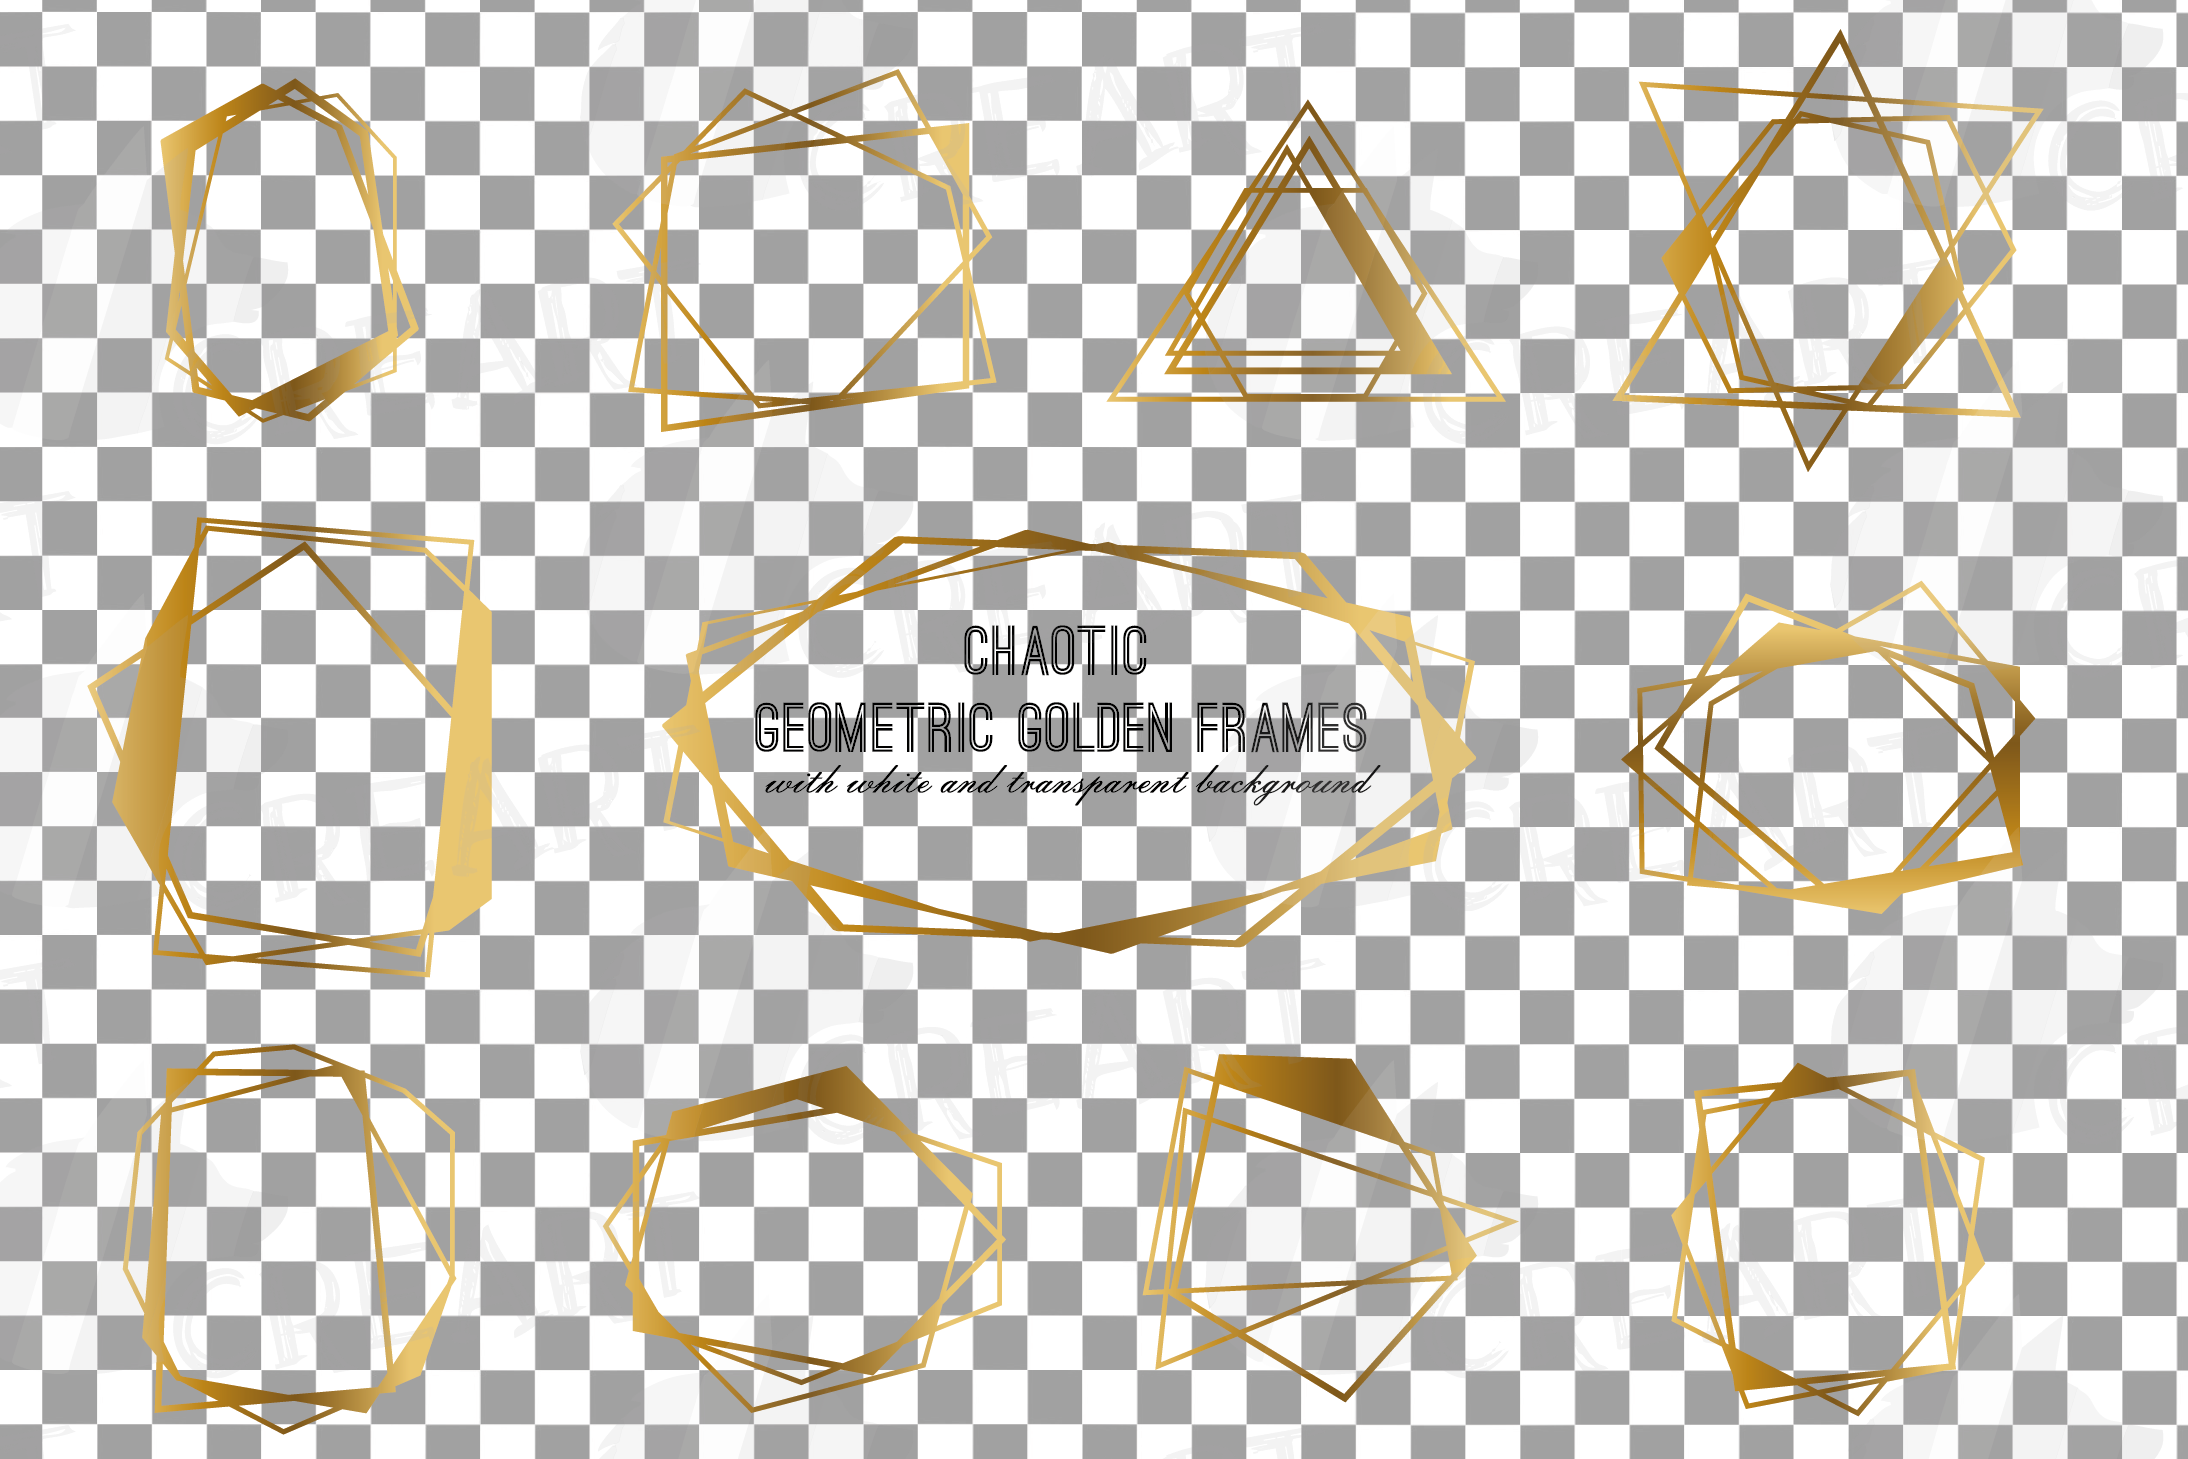 Chaotic geometric golden frames, lineal frames clip art example image 3